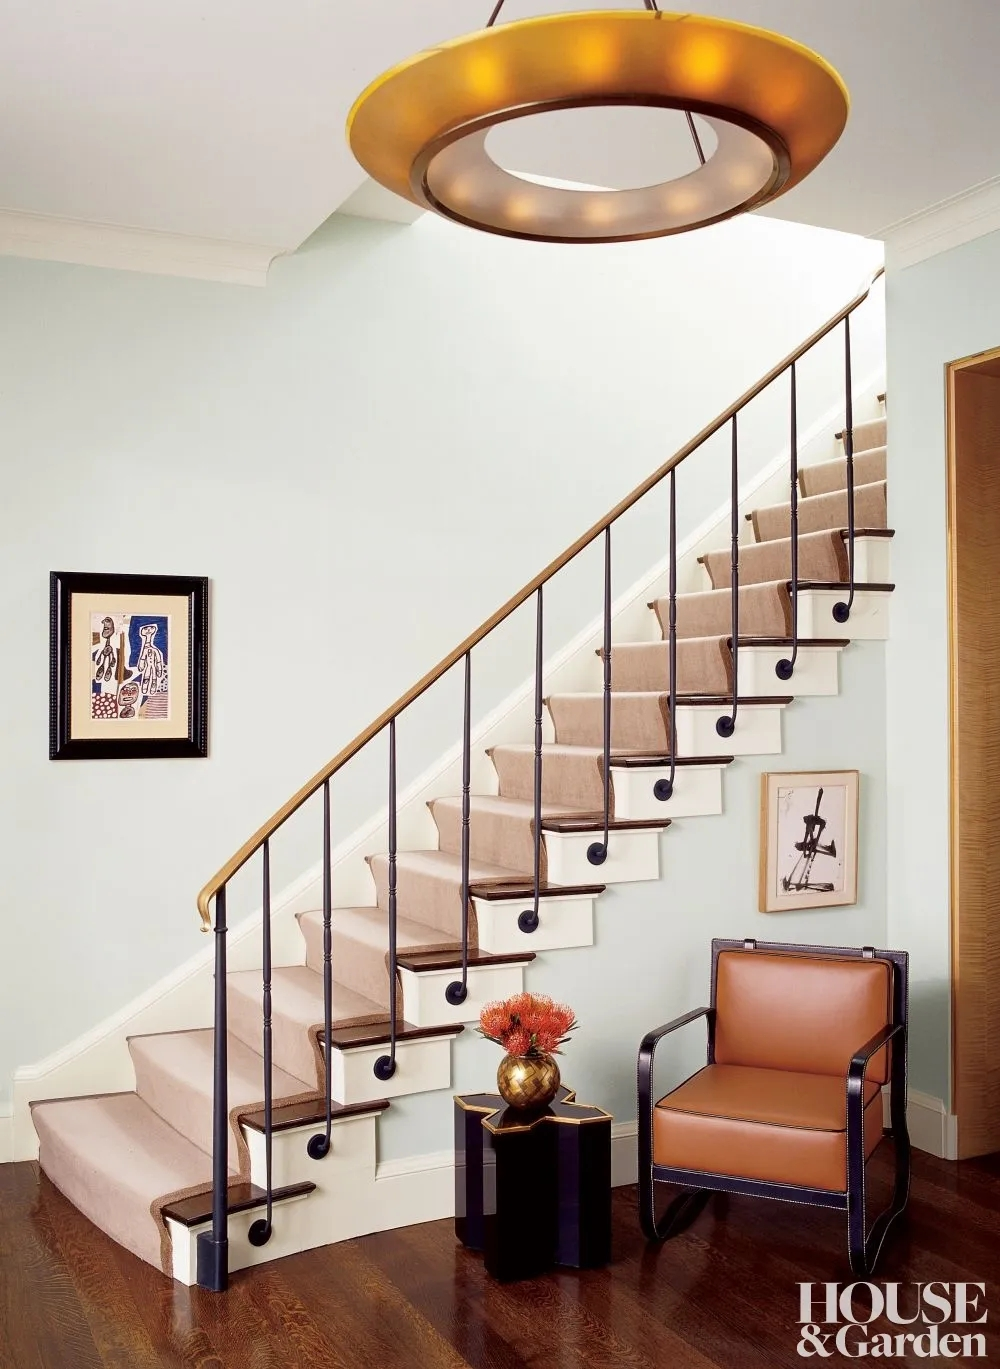 Types Of Stairs Explained Architectural Digest | House Steps Design Outside | Renovation | Fancy | Second Floor | Interior | Patio